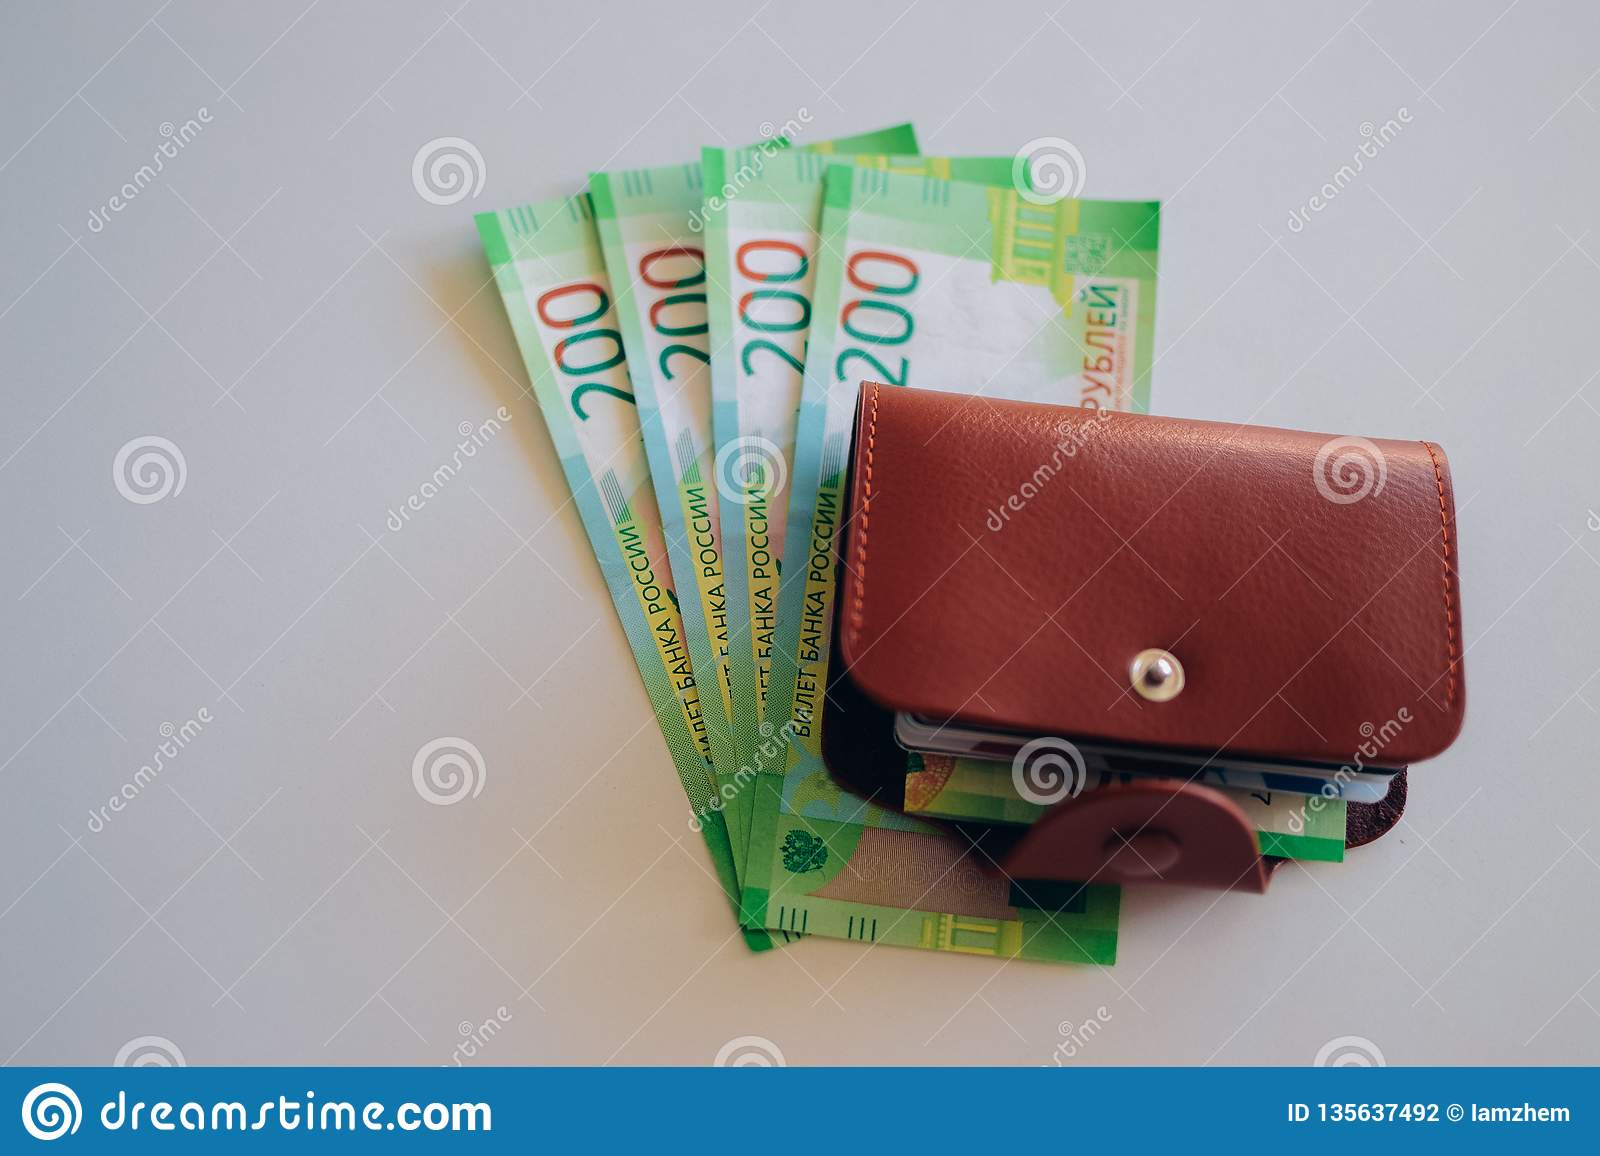 Brown leather wallet with plastic cards and Bank of Russia banknotes. Russian money for 200 rubles